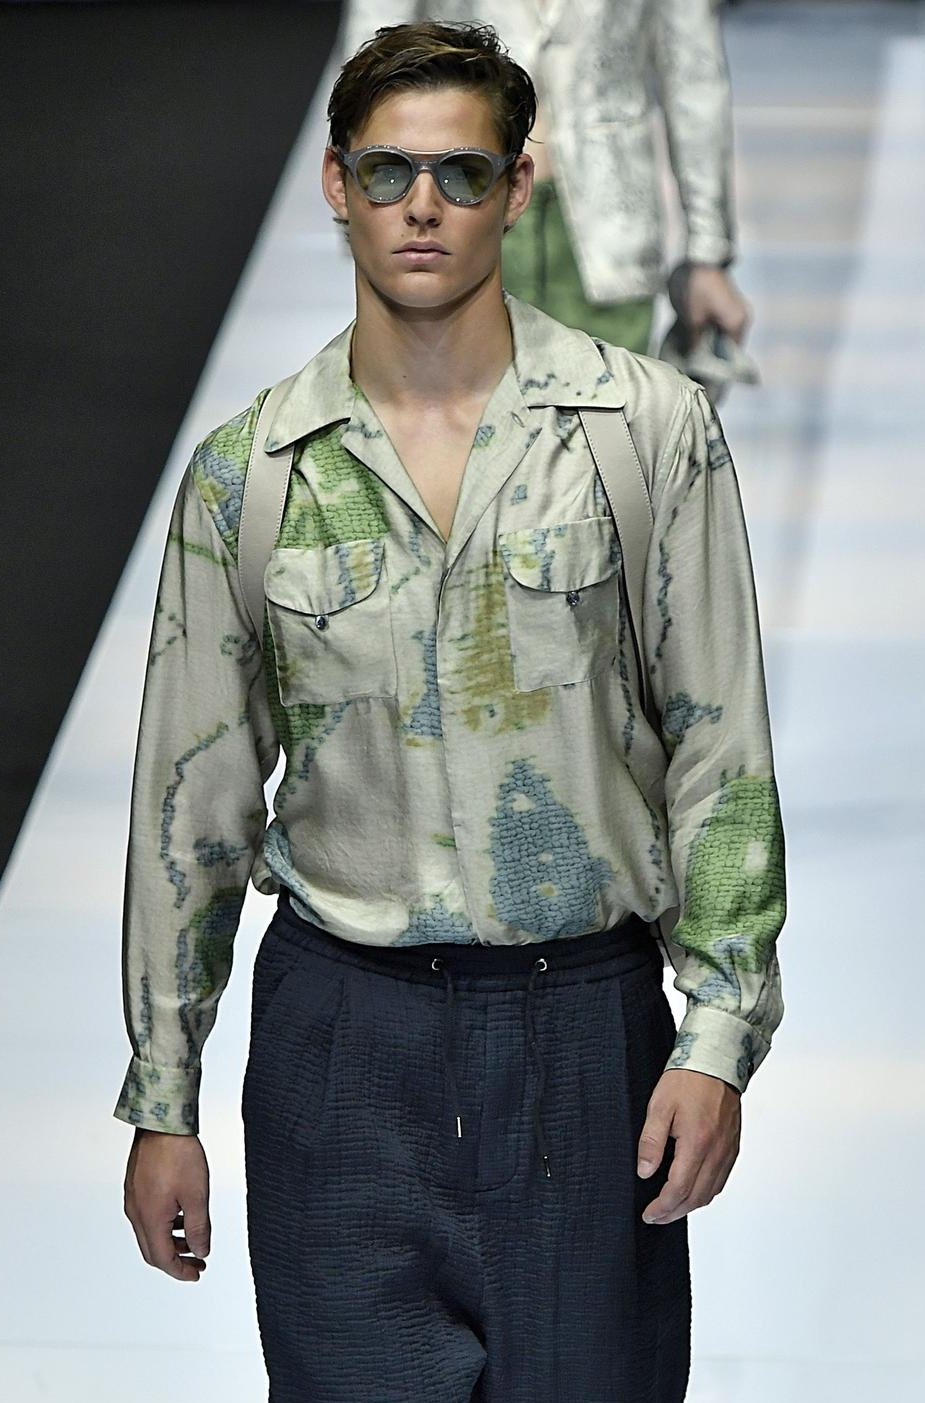 7 Menswear Trends With Staying Power Edited